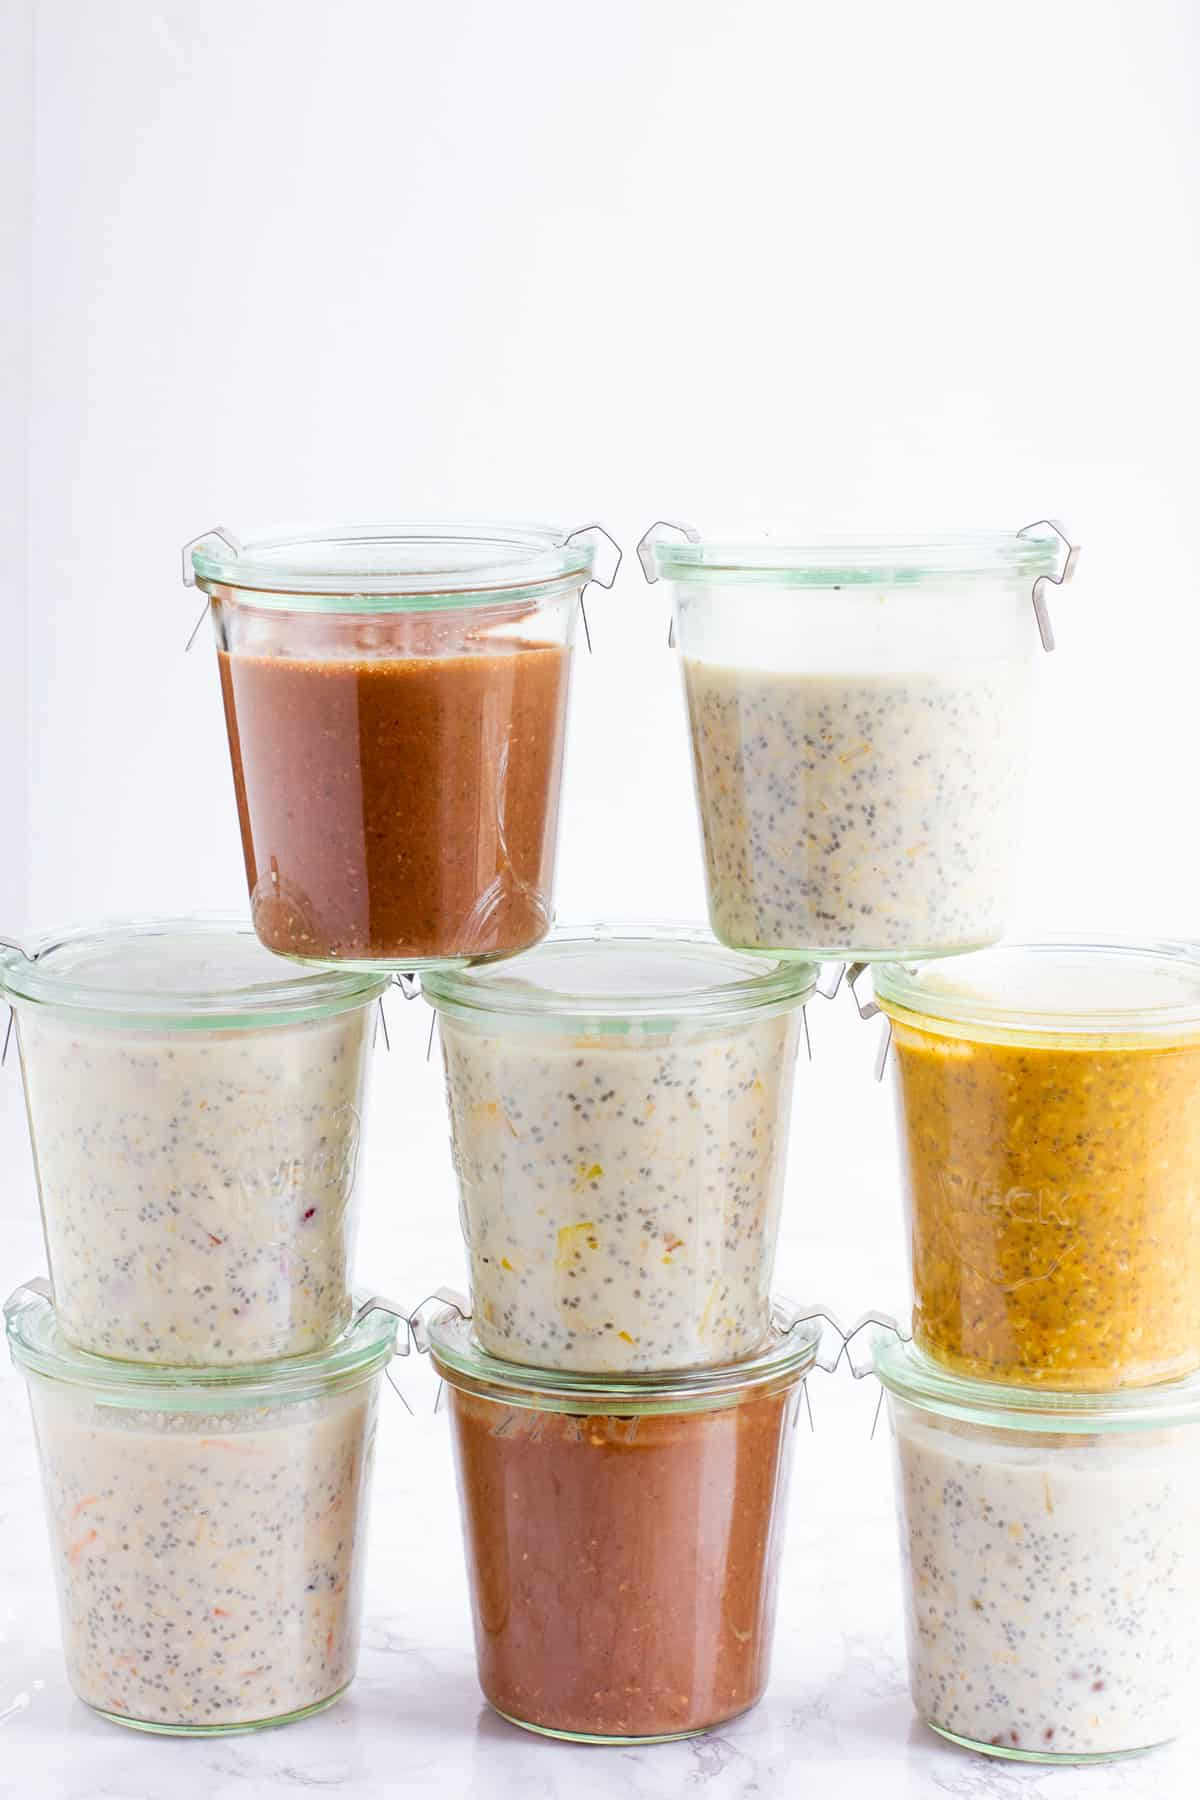 8 glass jars filled with different flavors of overnight oats stacked in a pyramid.